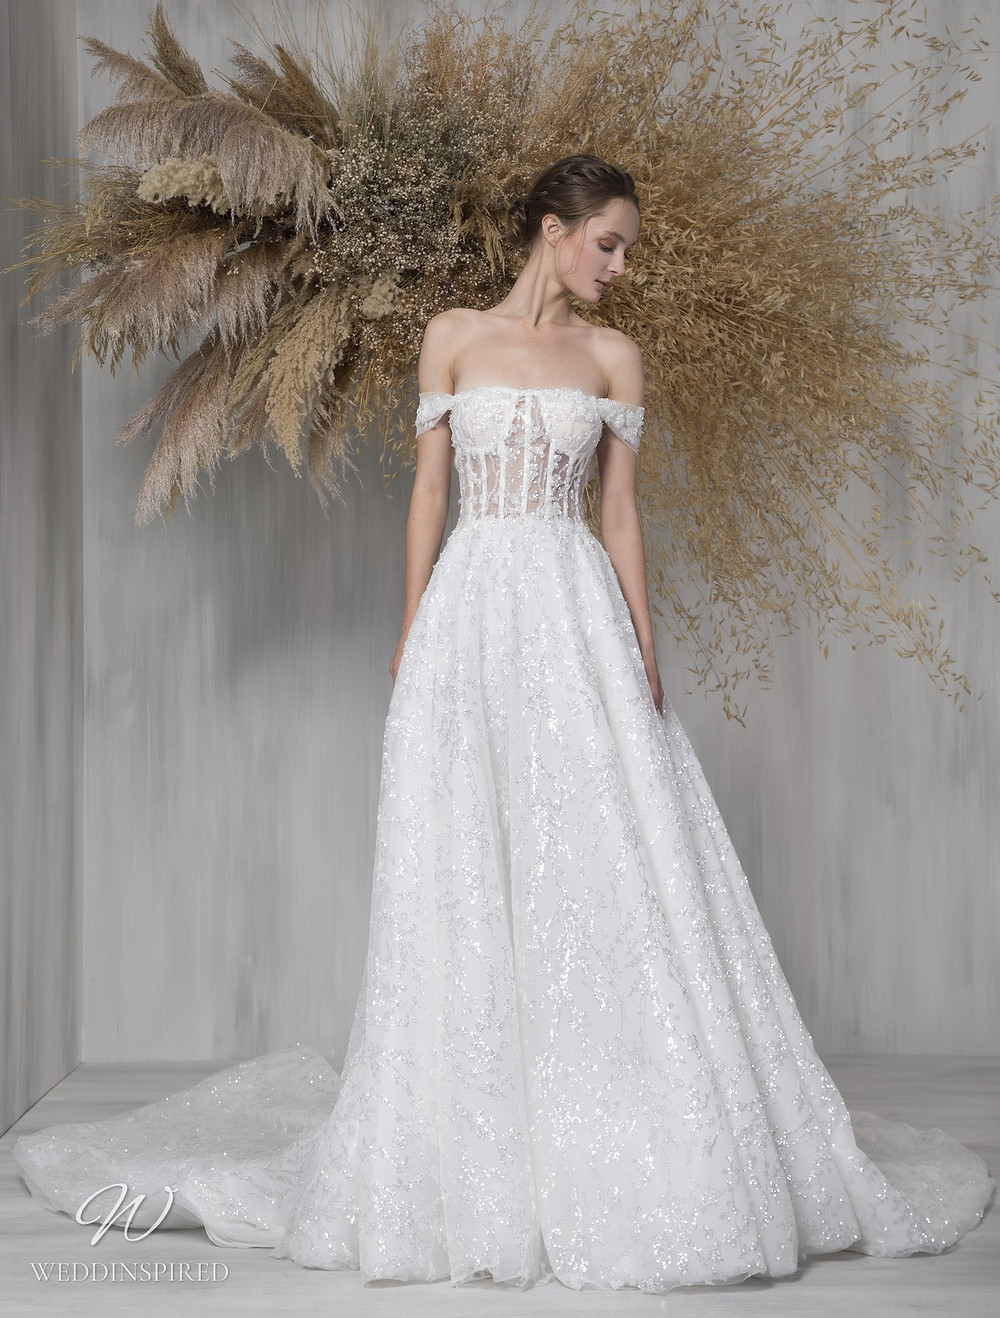 A Tony Ward 2021 off the shoulder sparkly A-line wedding dress with a train